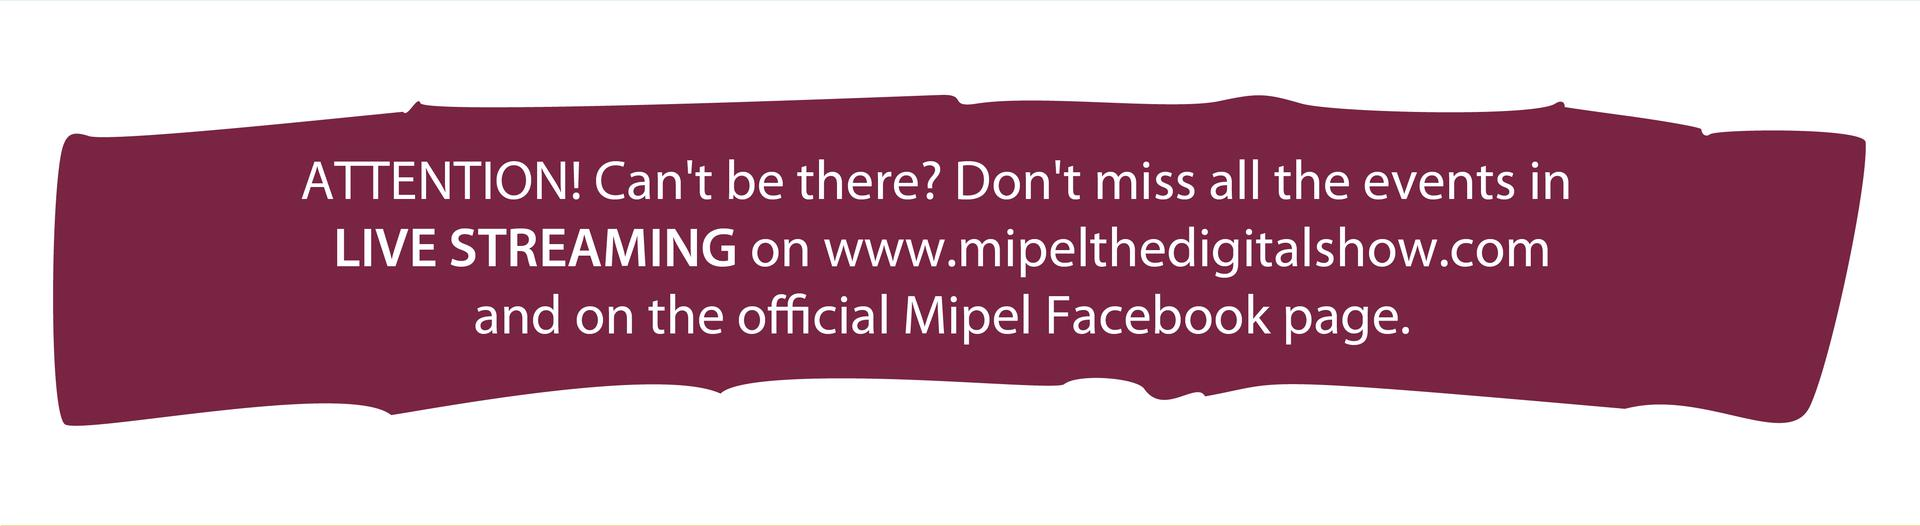 ATTENTION! Can't be there Don't miss all the events in LIVE STREAMING on Mipel The Digital Show and on the official Mipel Facebook page